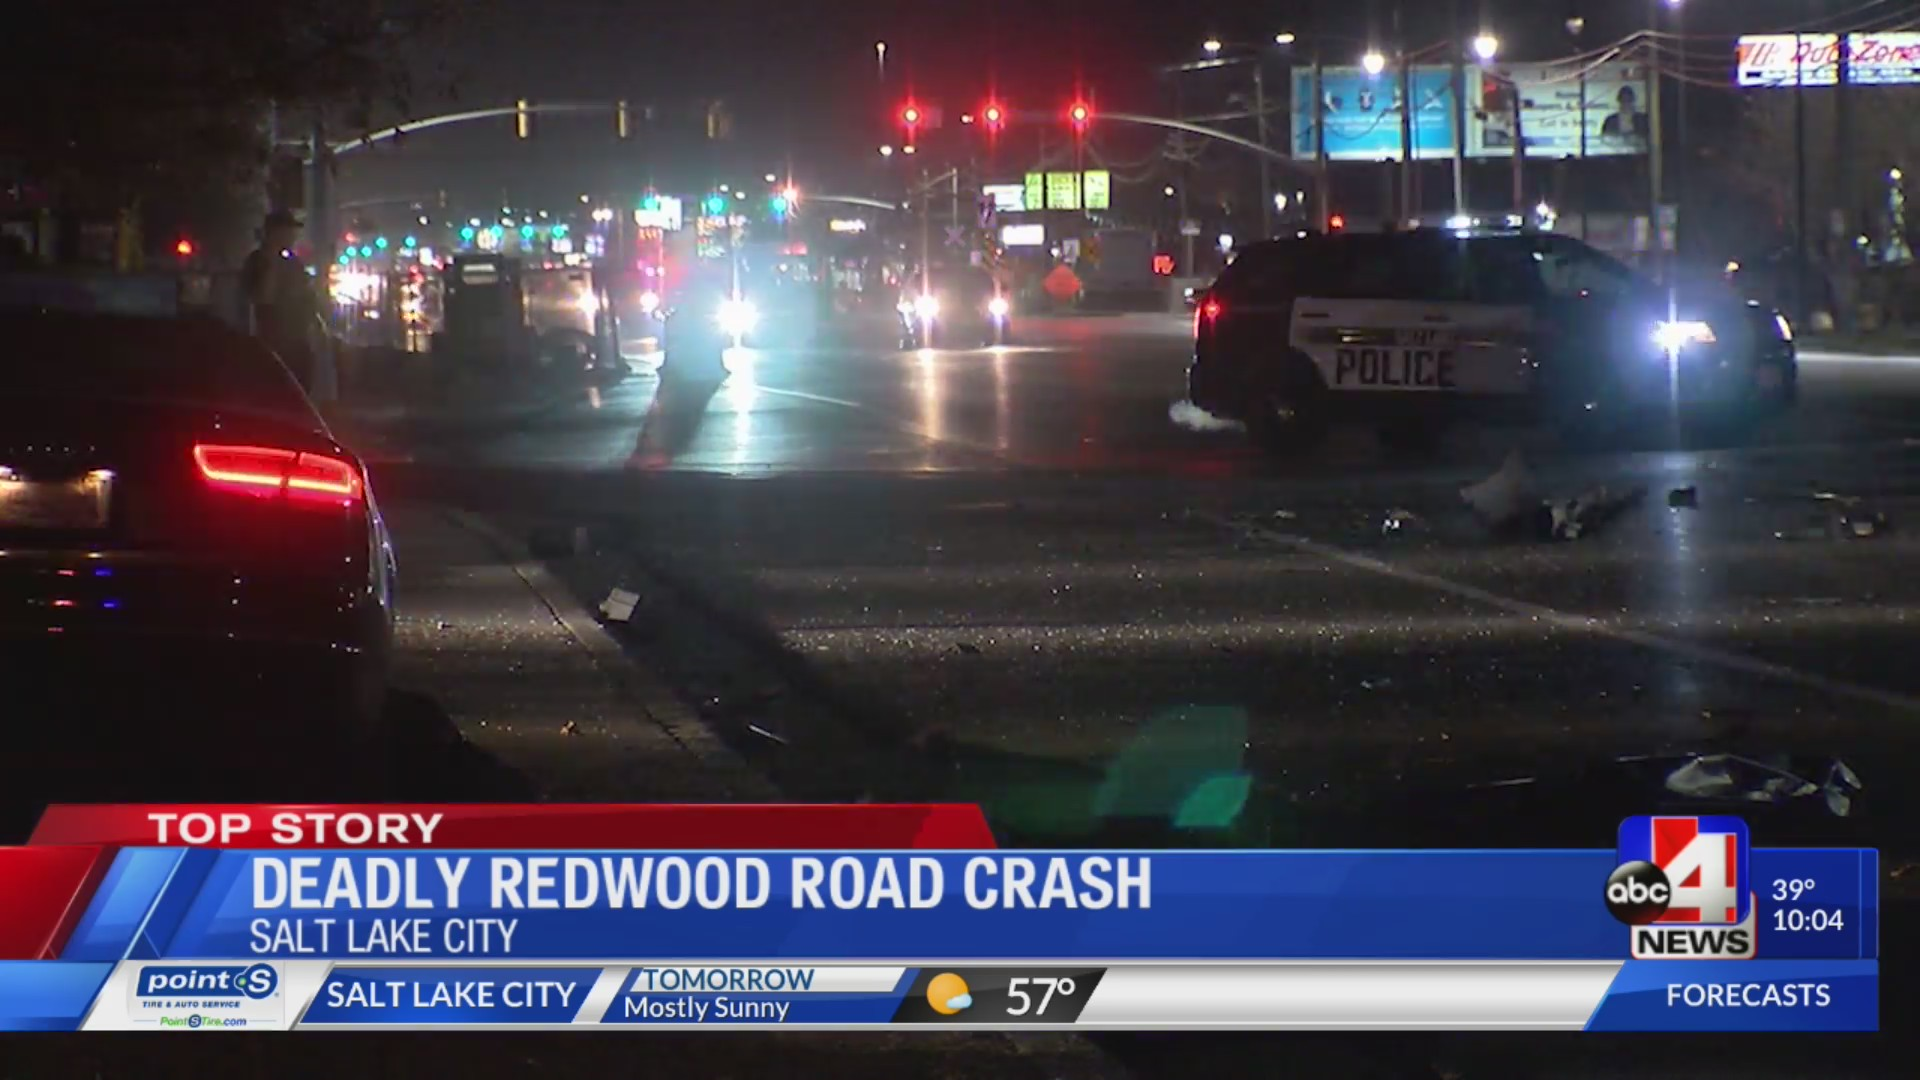 Deadly crash on redwood road shuts down road overnight saturday